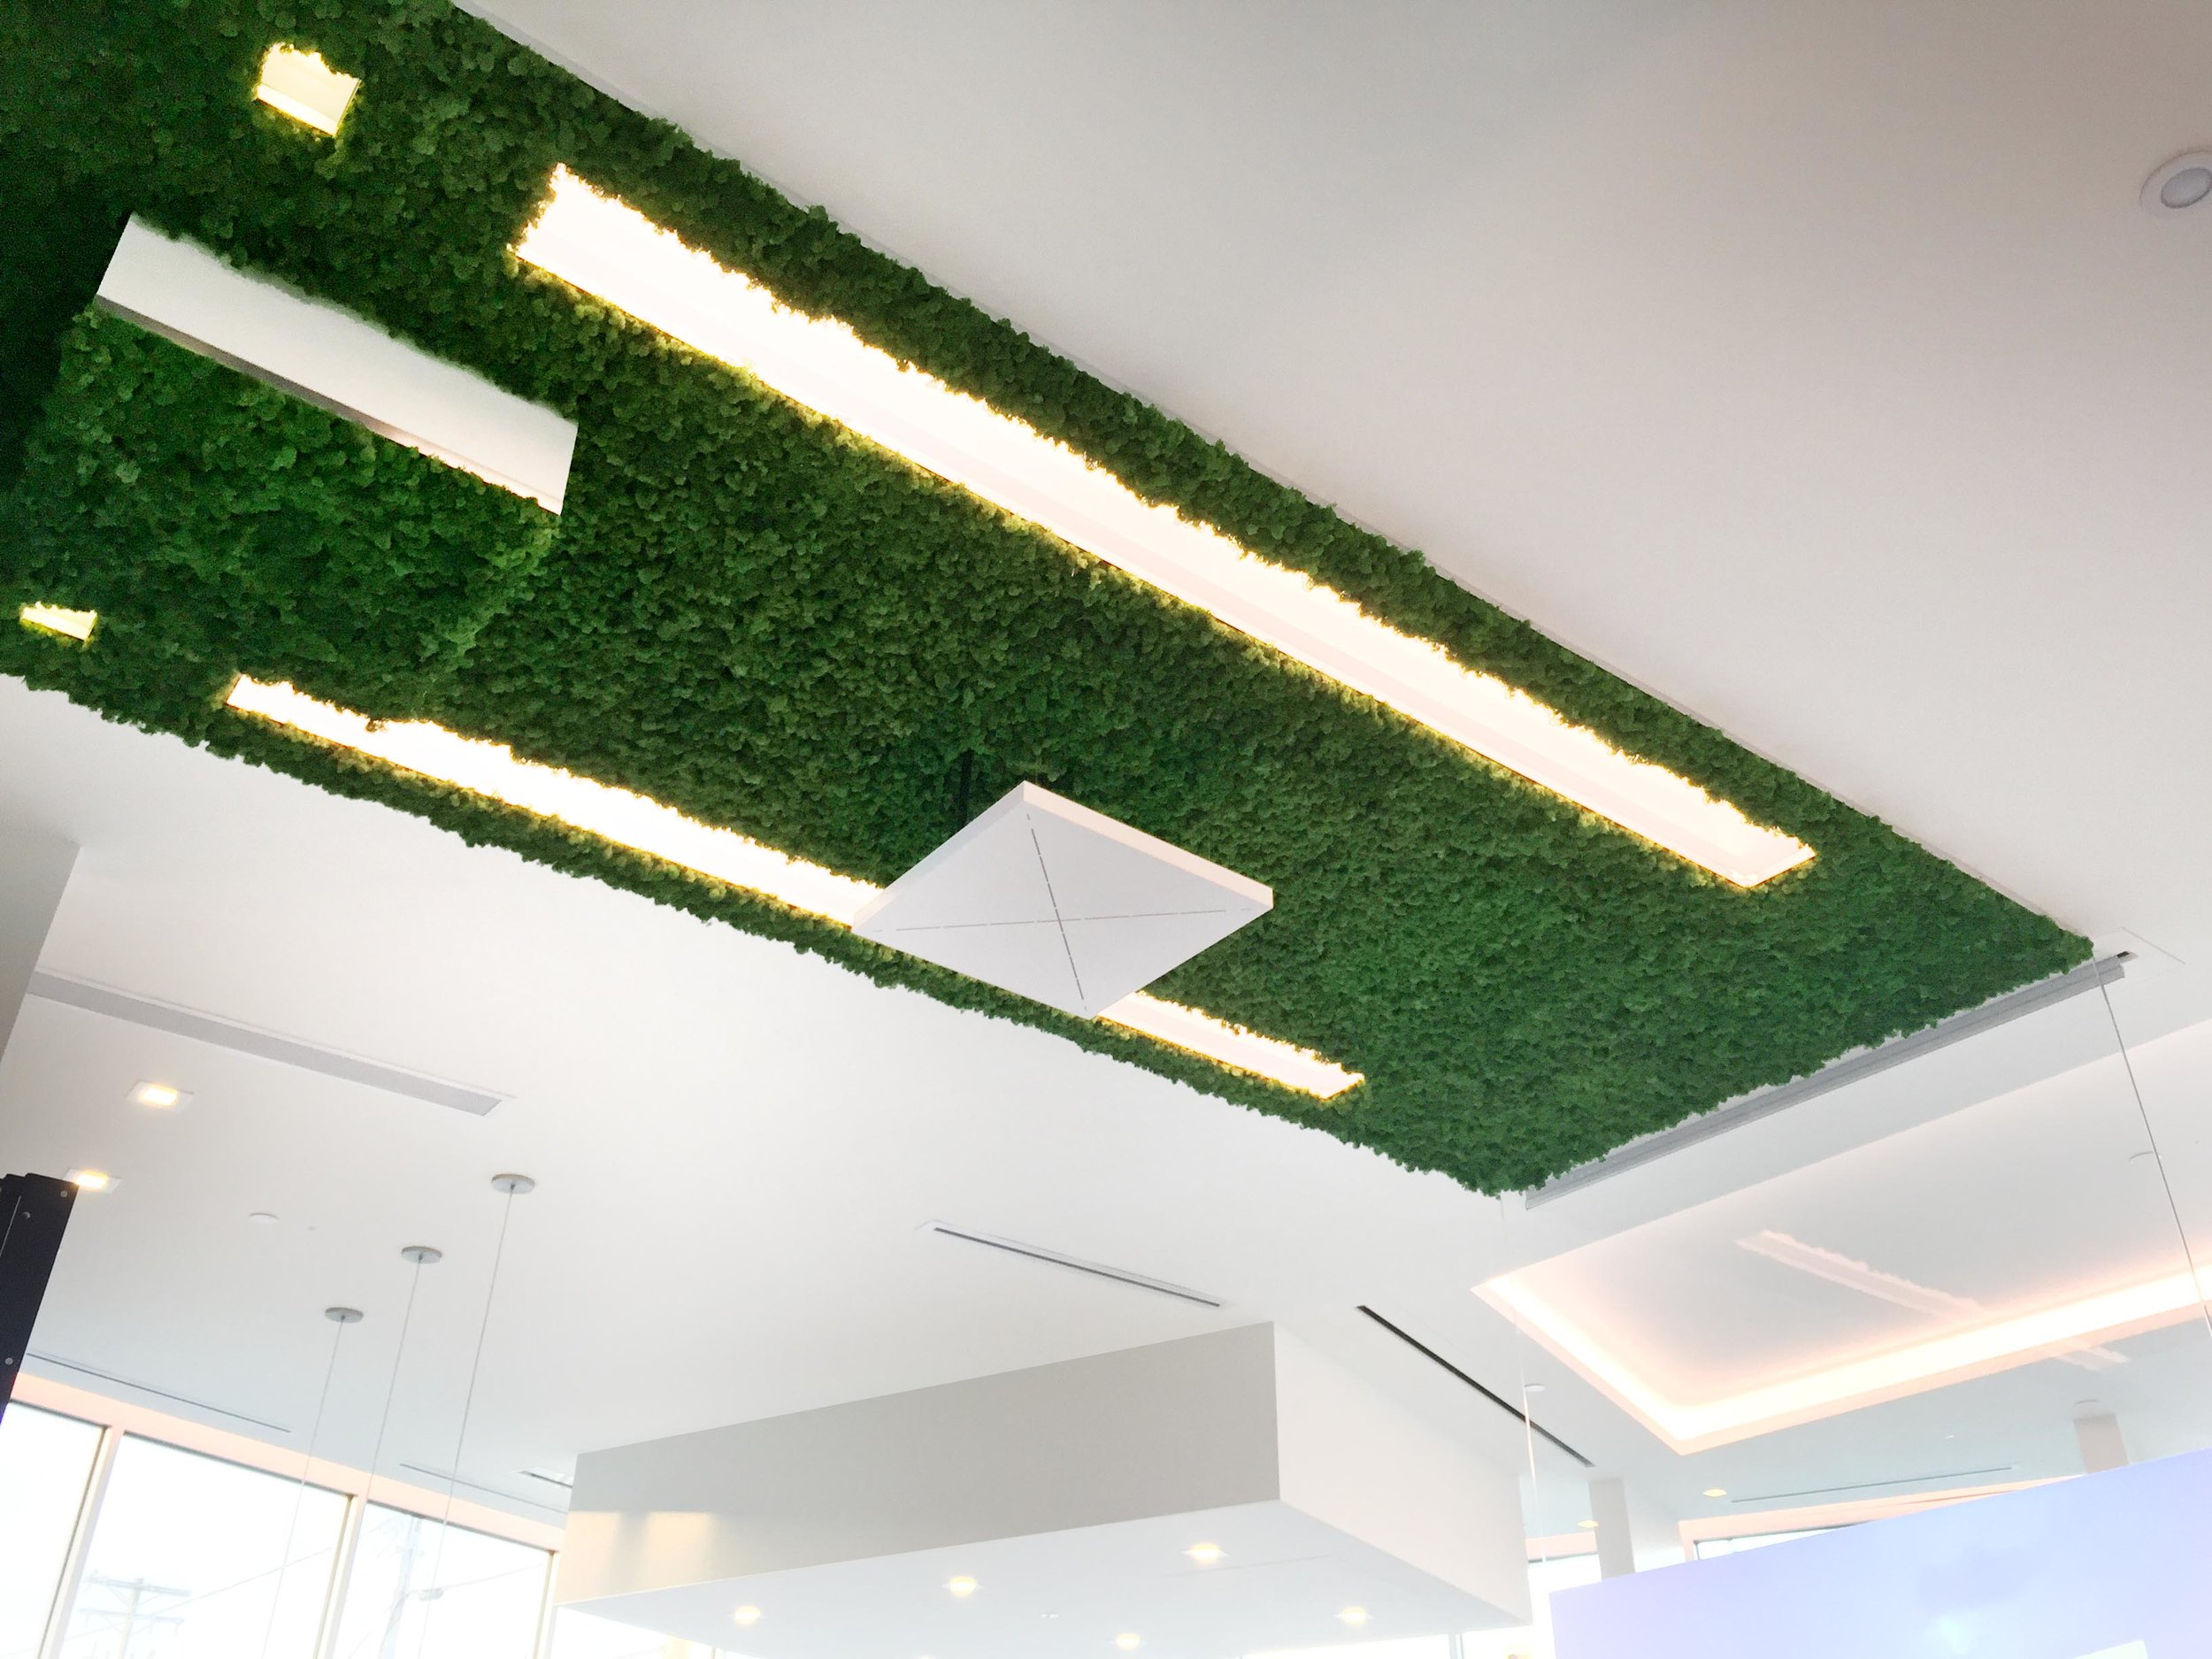 An architectural moss ceiling above the meeting table is an acoustic surface that doubles as an eye-catching swath of greenery.